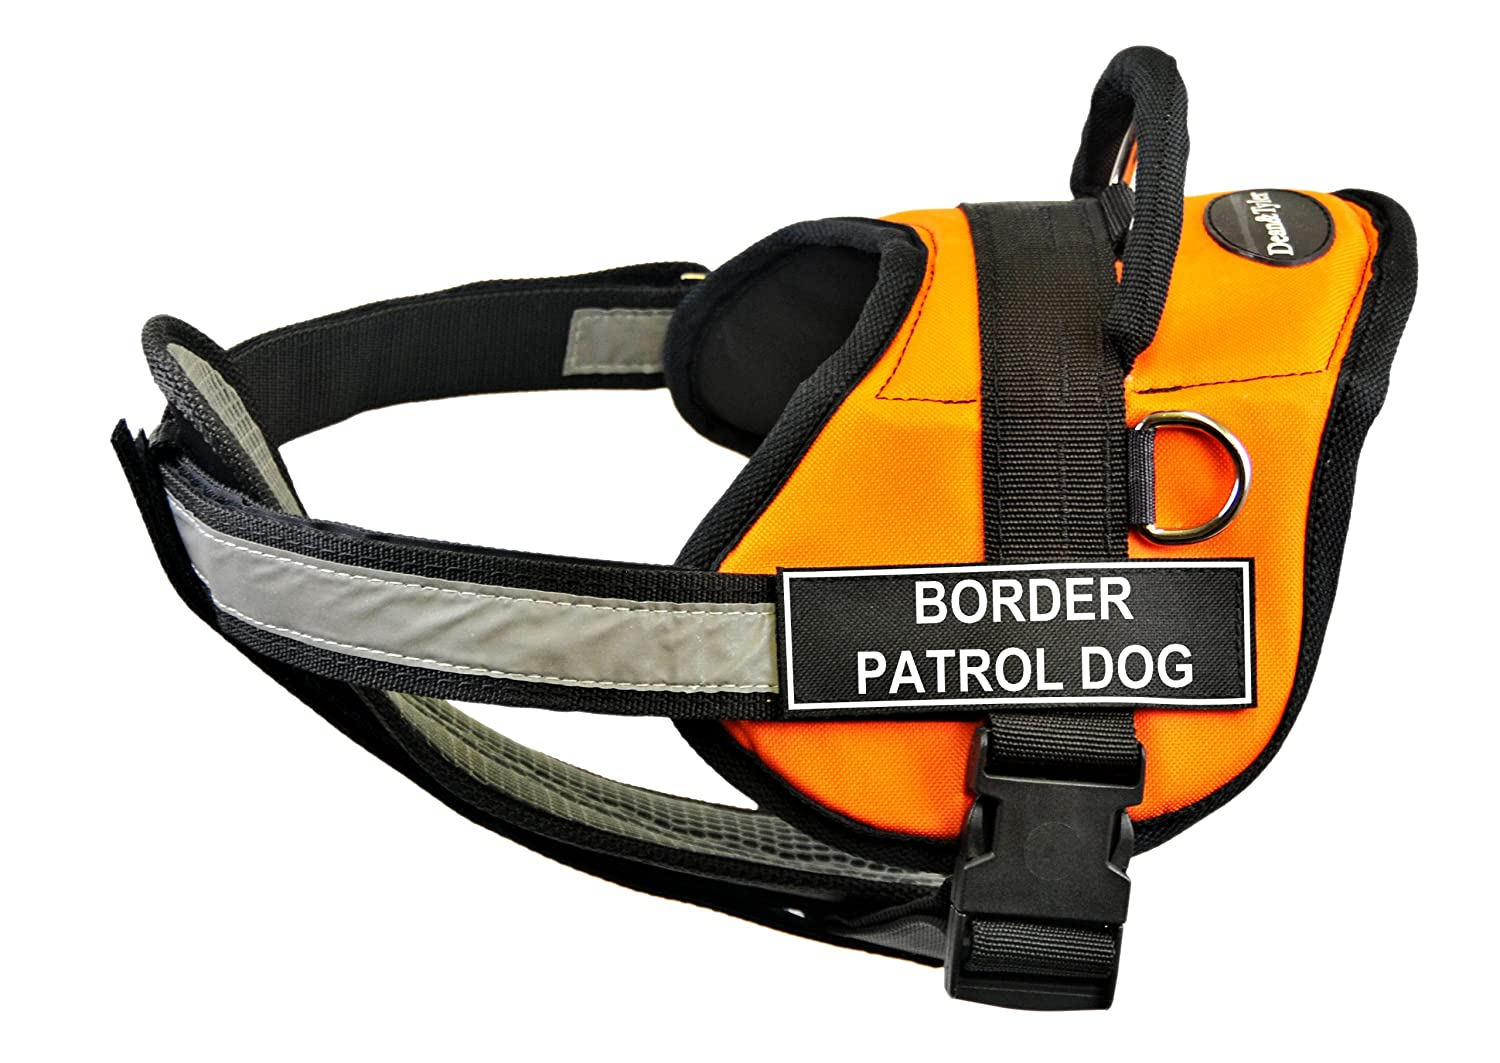 Dean & Tyler 25-Inch to 34-Inch Border Patrol Dog Harness with Padded Reflective Chest Straps, Small, orange Black